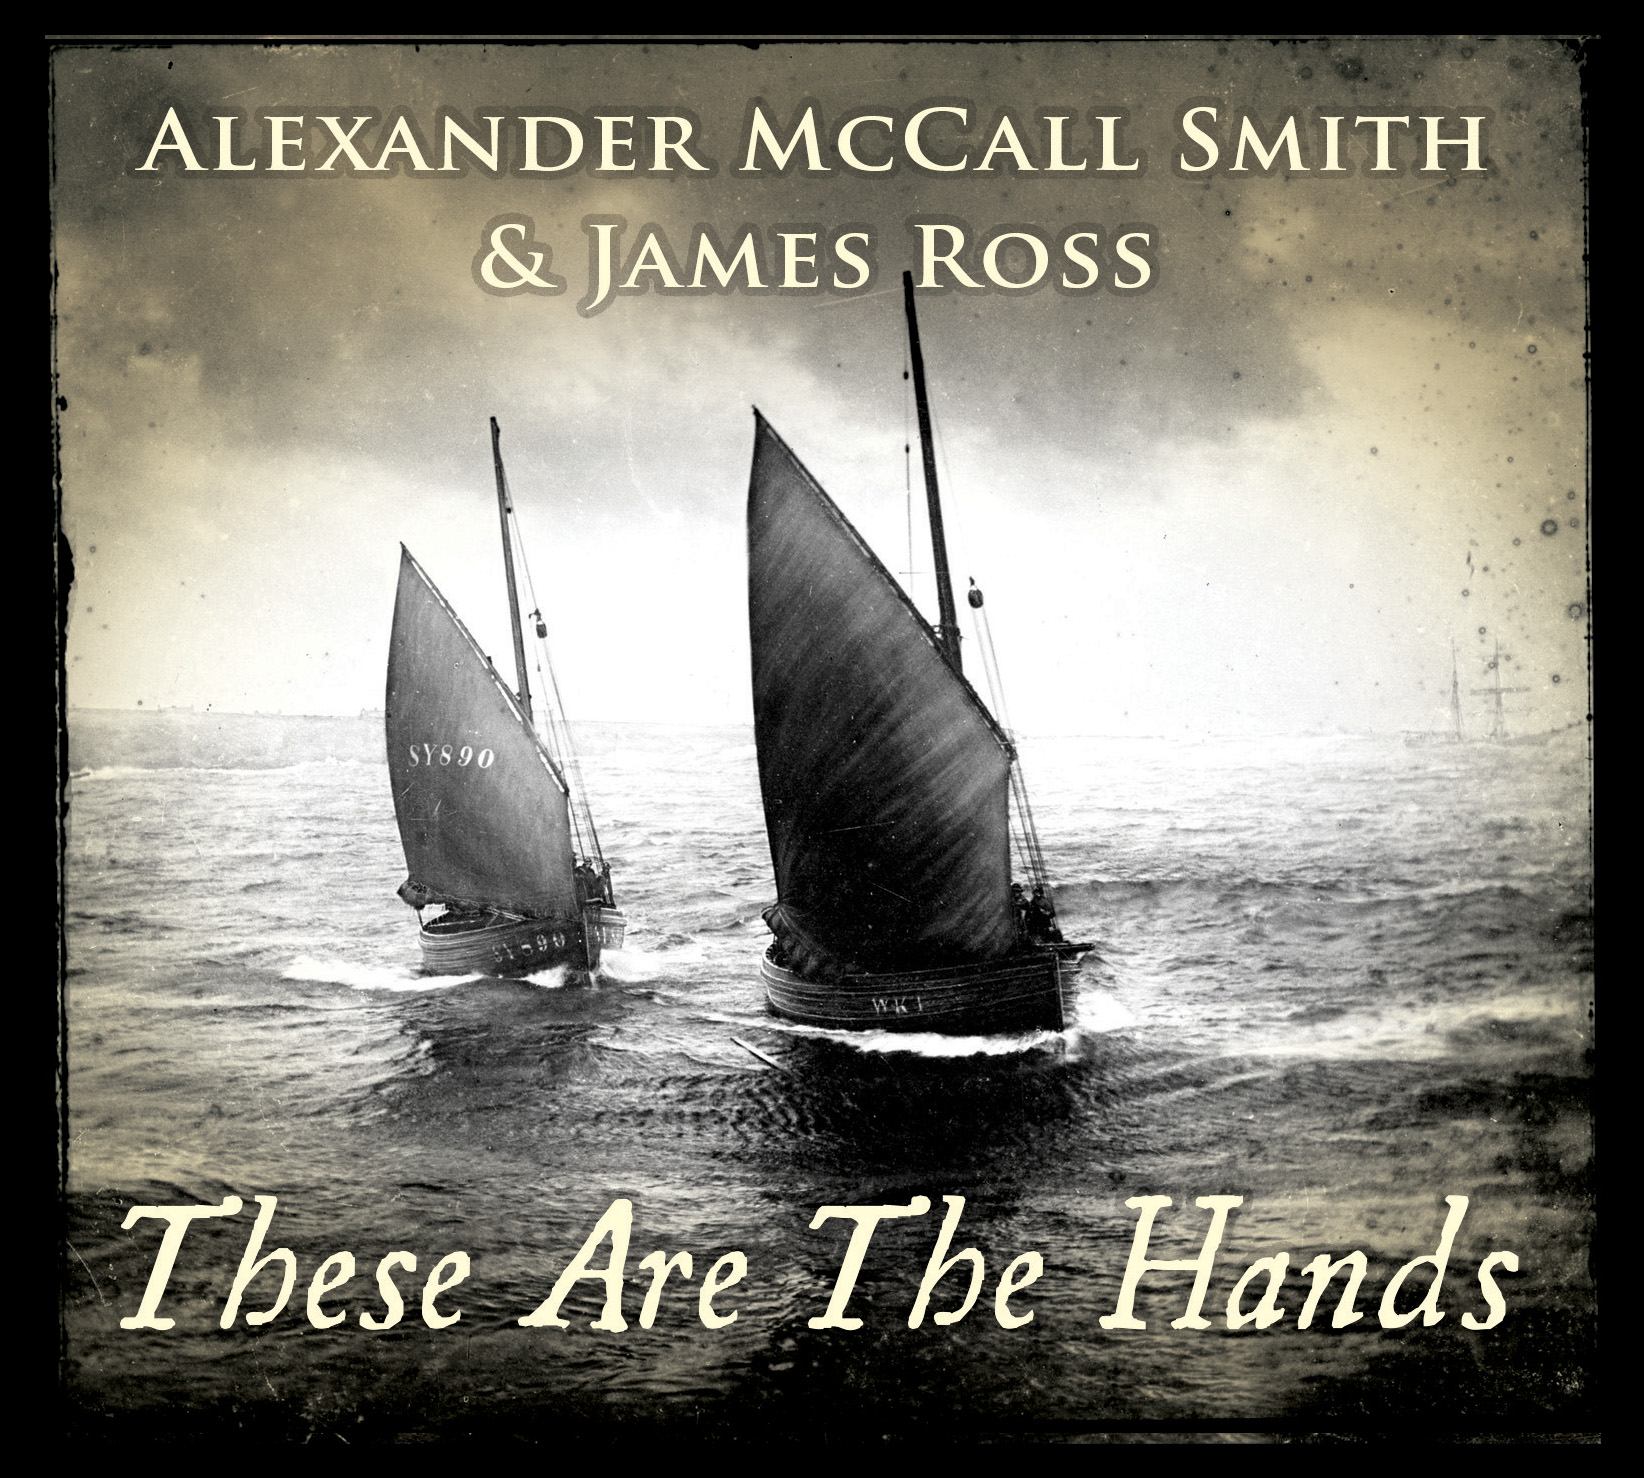 These Are The Hands - Alexander McCall Smith & James Ross - James Ross